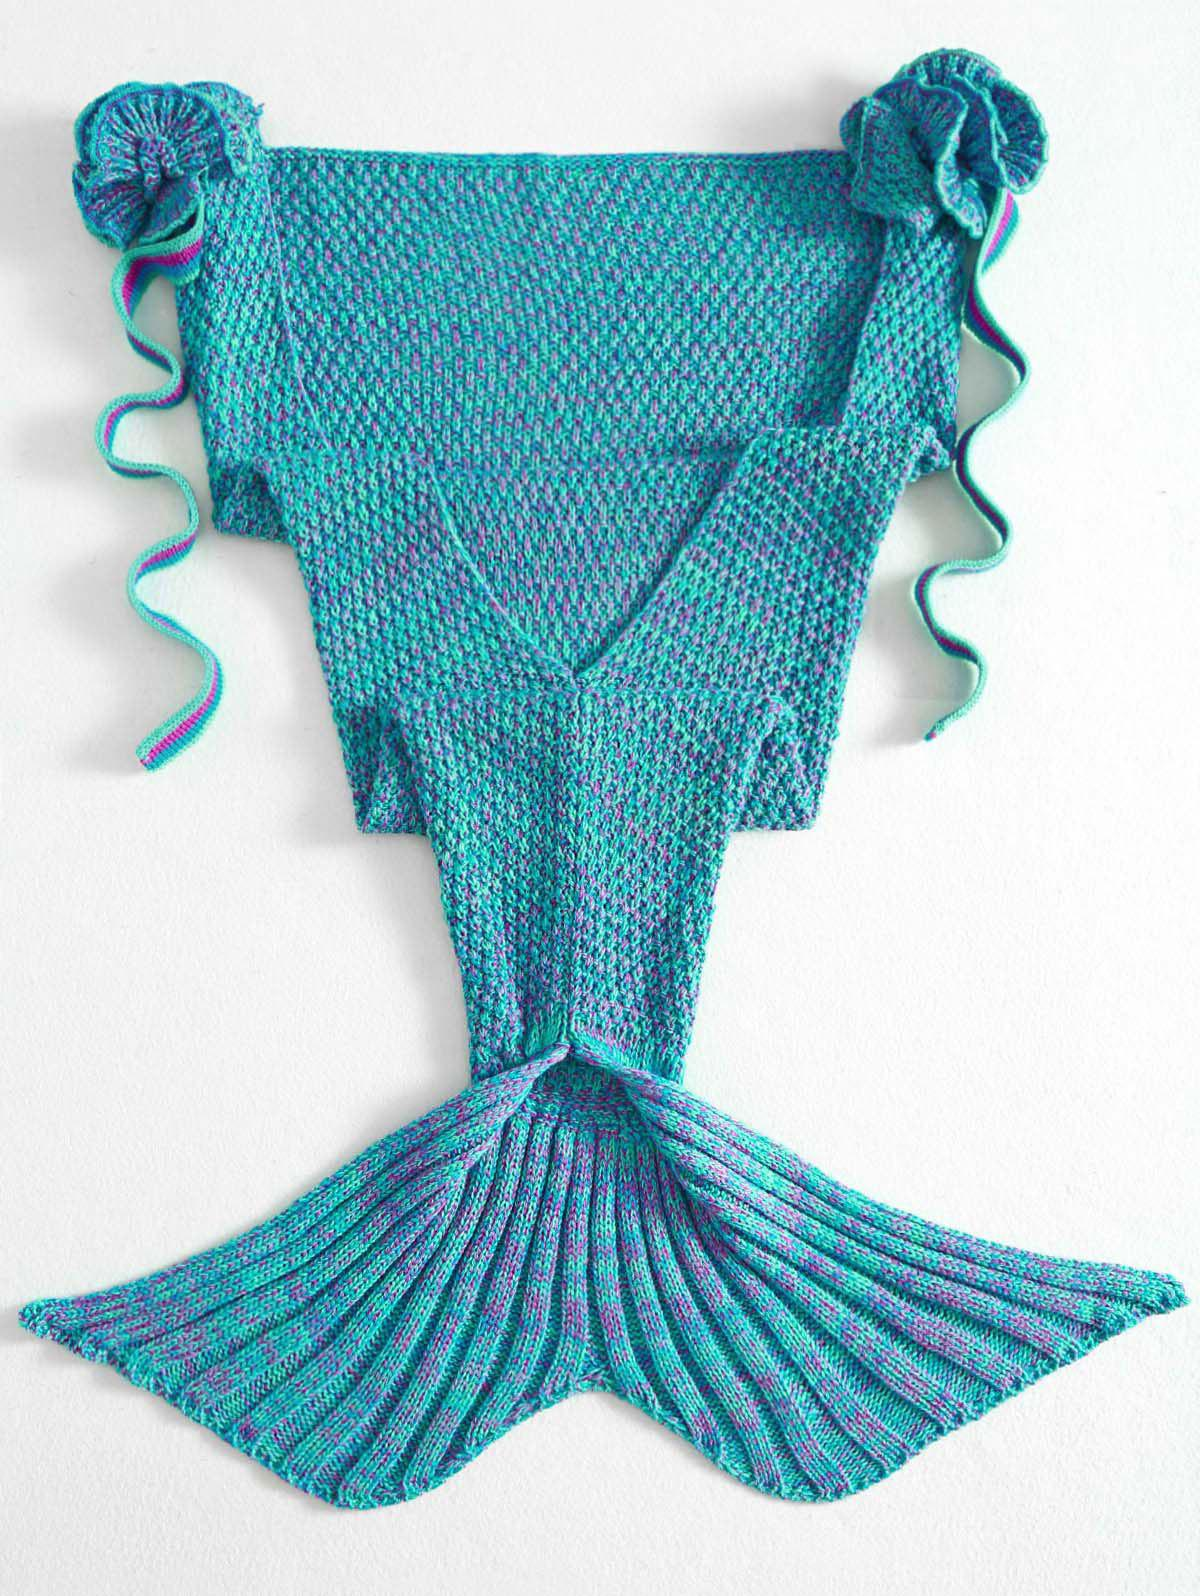 Chic Stylish Knitted Flowers Embellished Mermaid Tail Shape Blanket For Kids